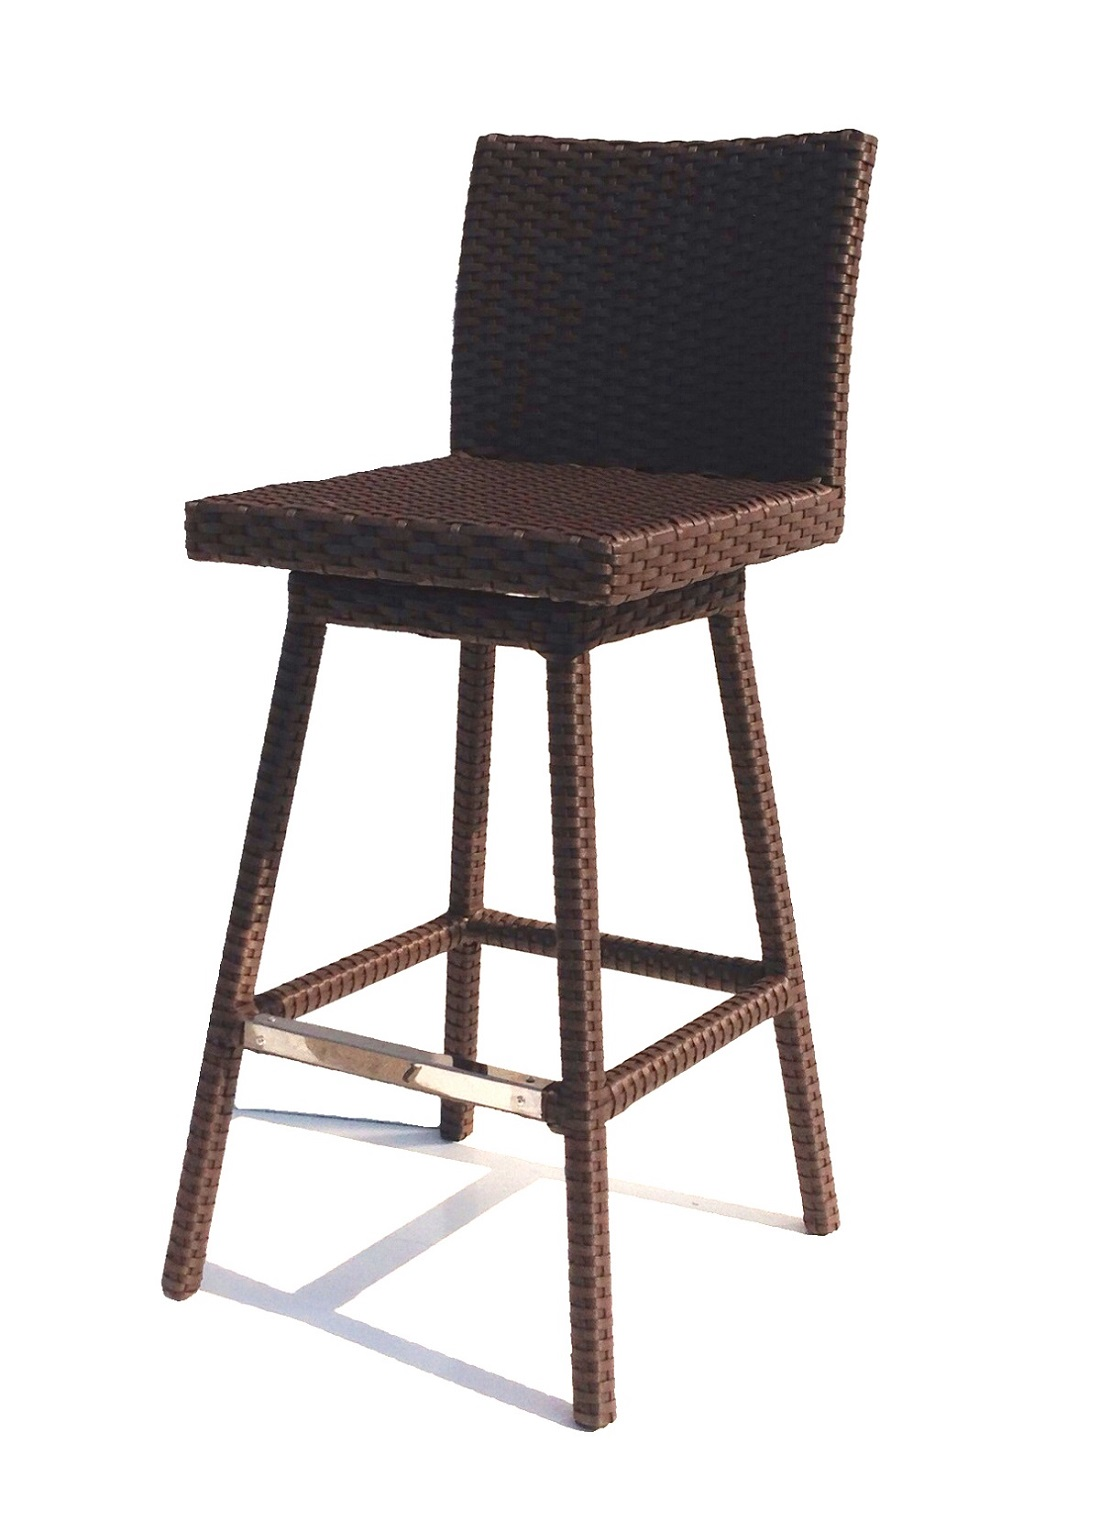 Outdoor Swivel Bar Stools With Arms Teak Swivel Bar Chair